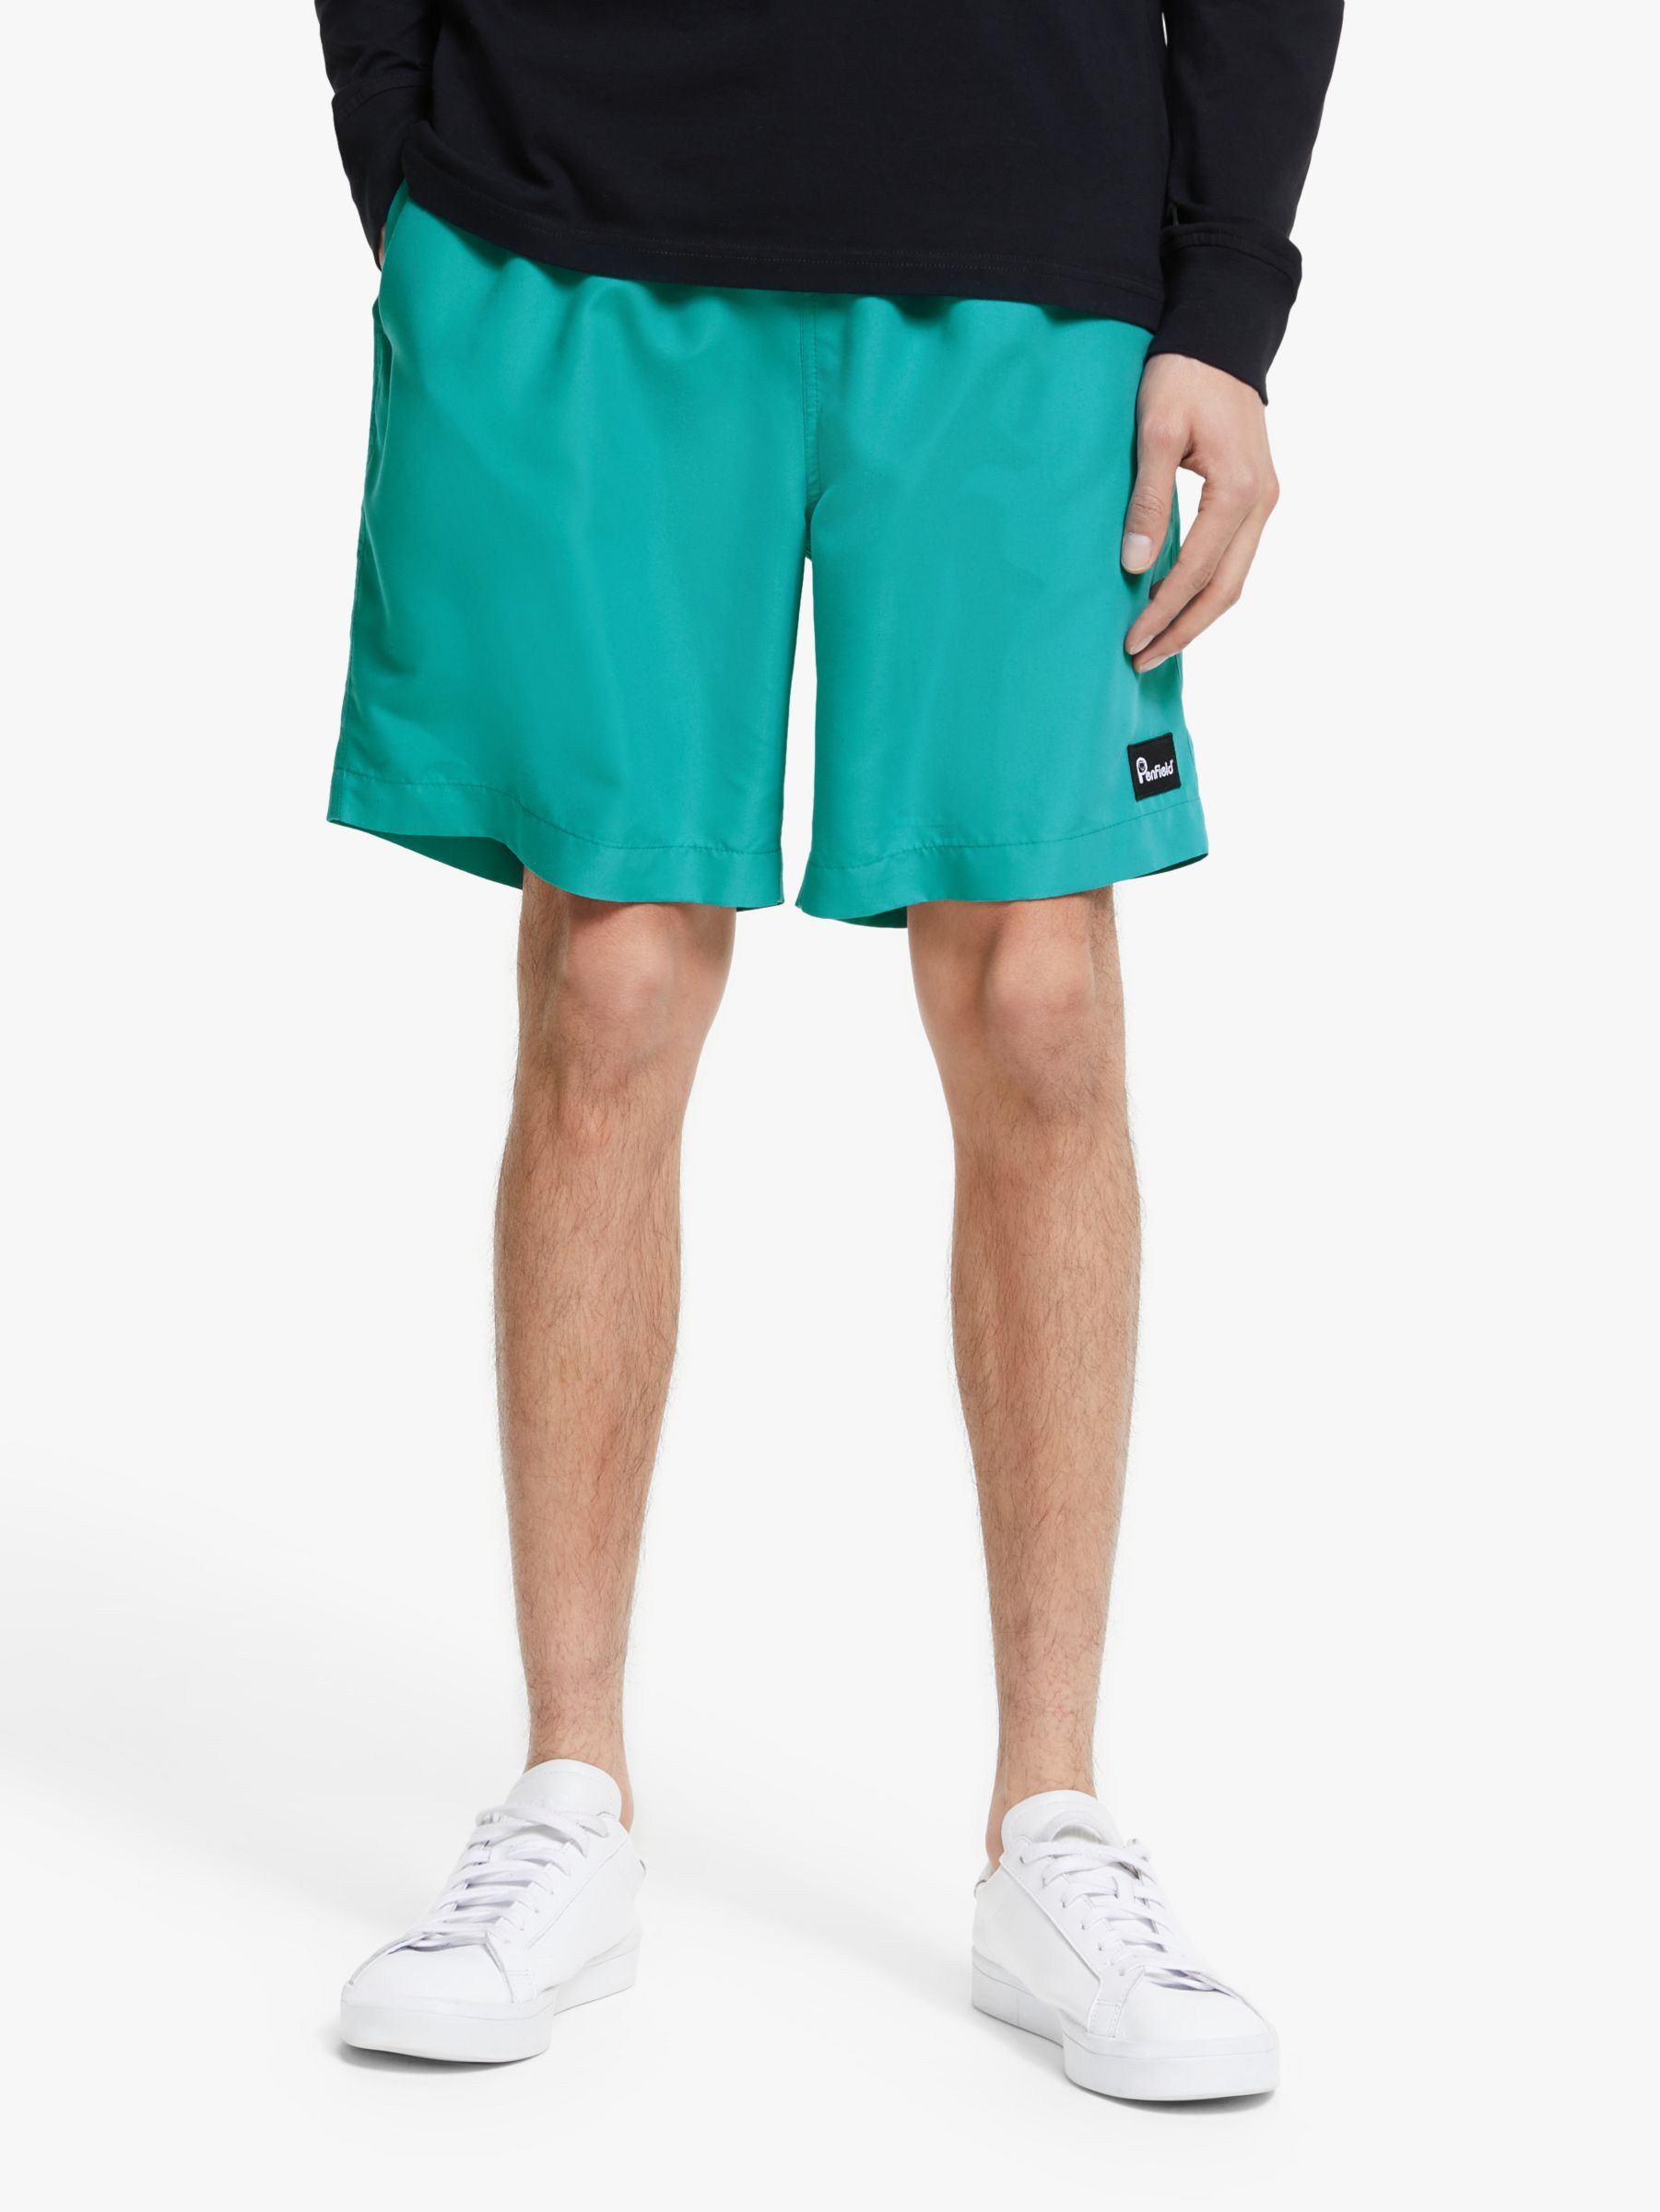 Penfield Penfield Seal Shorts, Teal Print